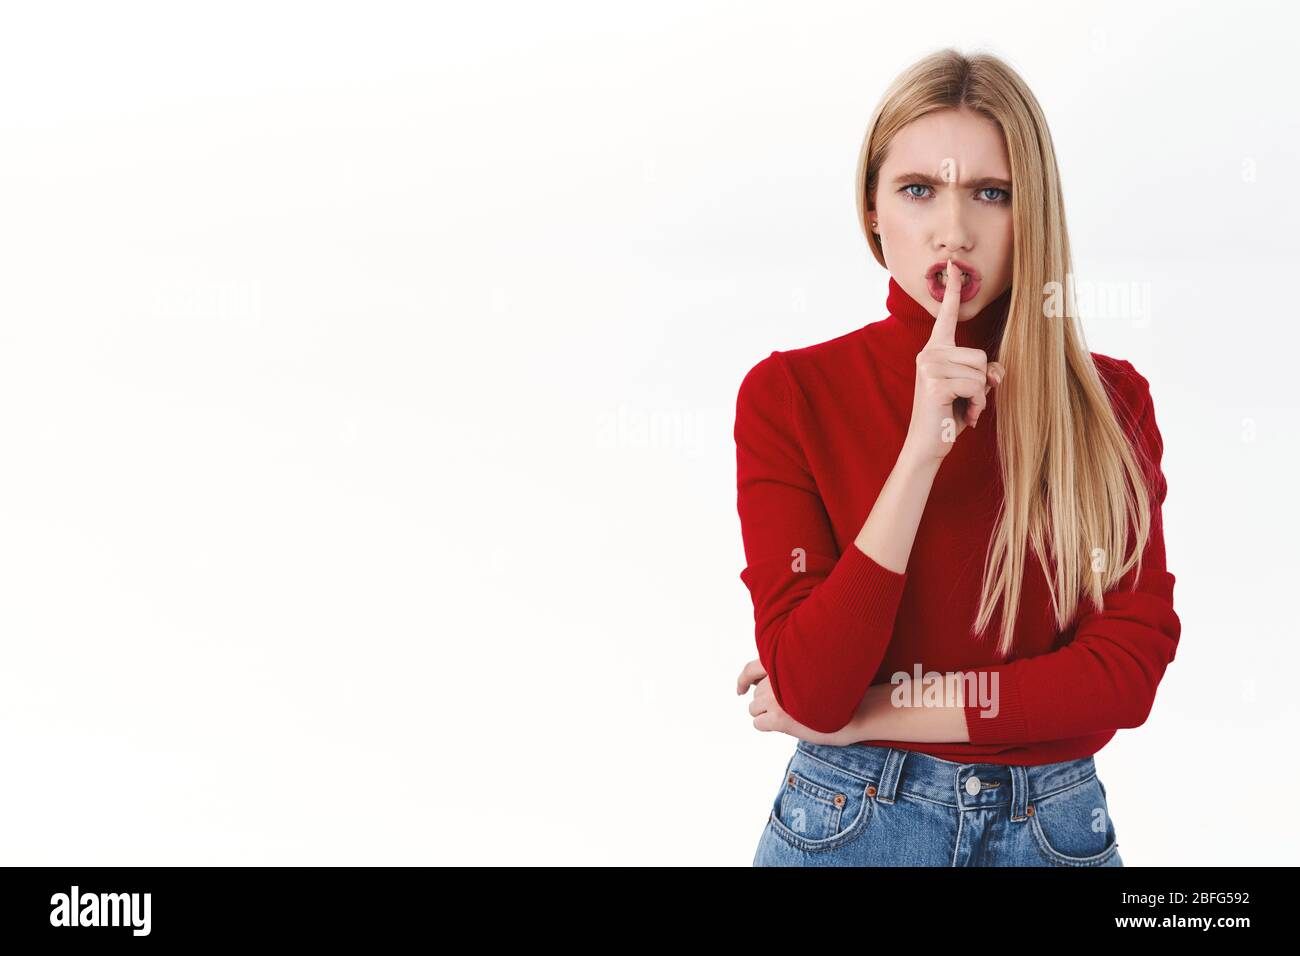 Employee, management and confident women concept. Angry serious blond female shushing, shhh with finger over lips, frowning mad tell be quiet, need si Stock Photo